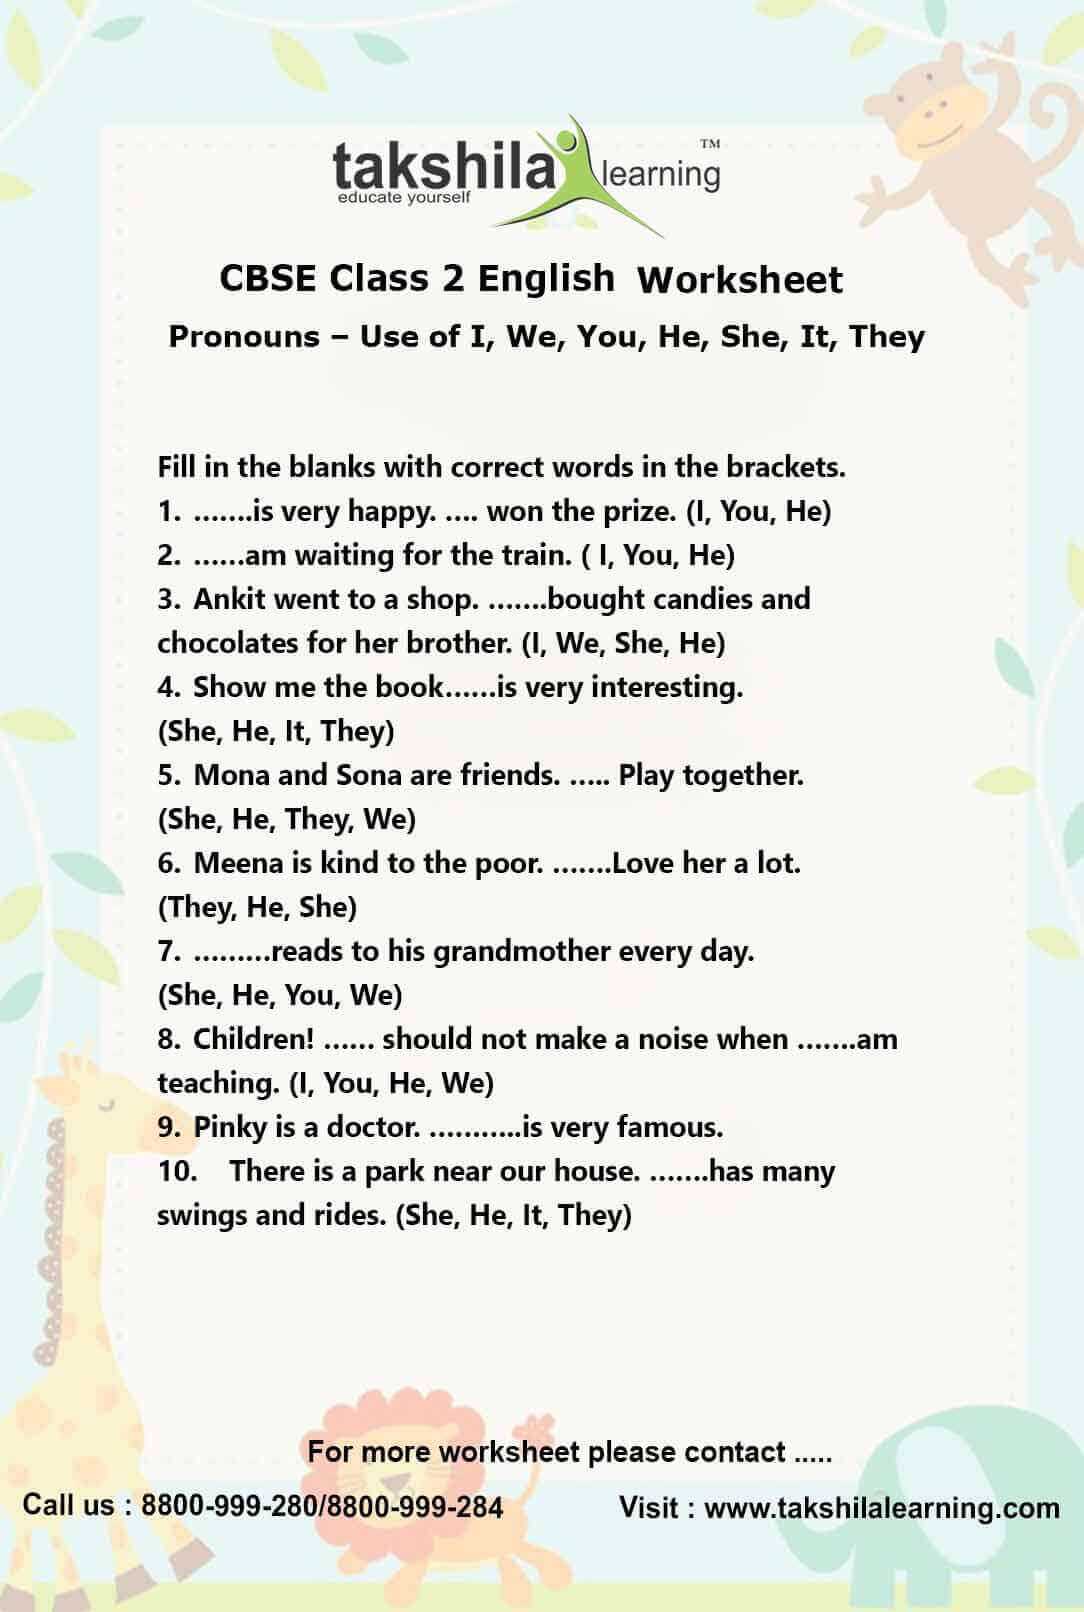 Worksheet English For Class 2